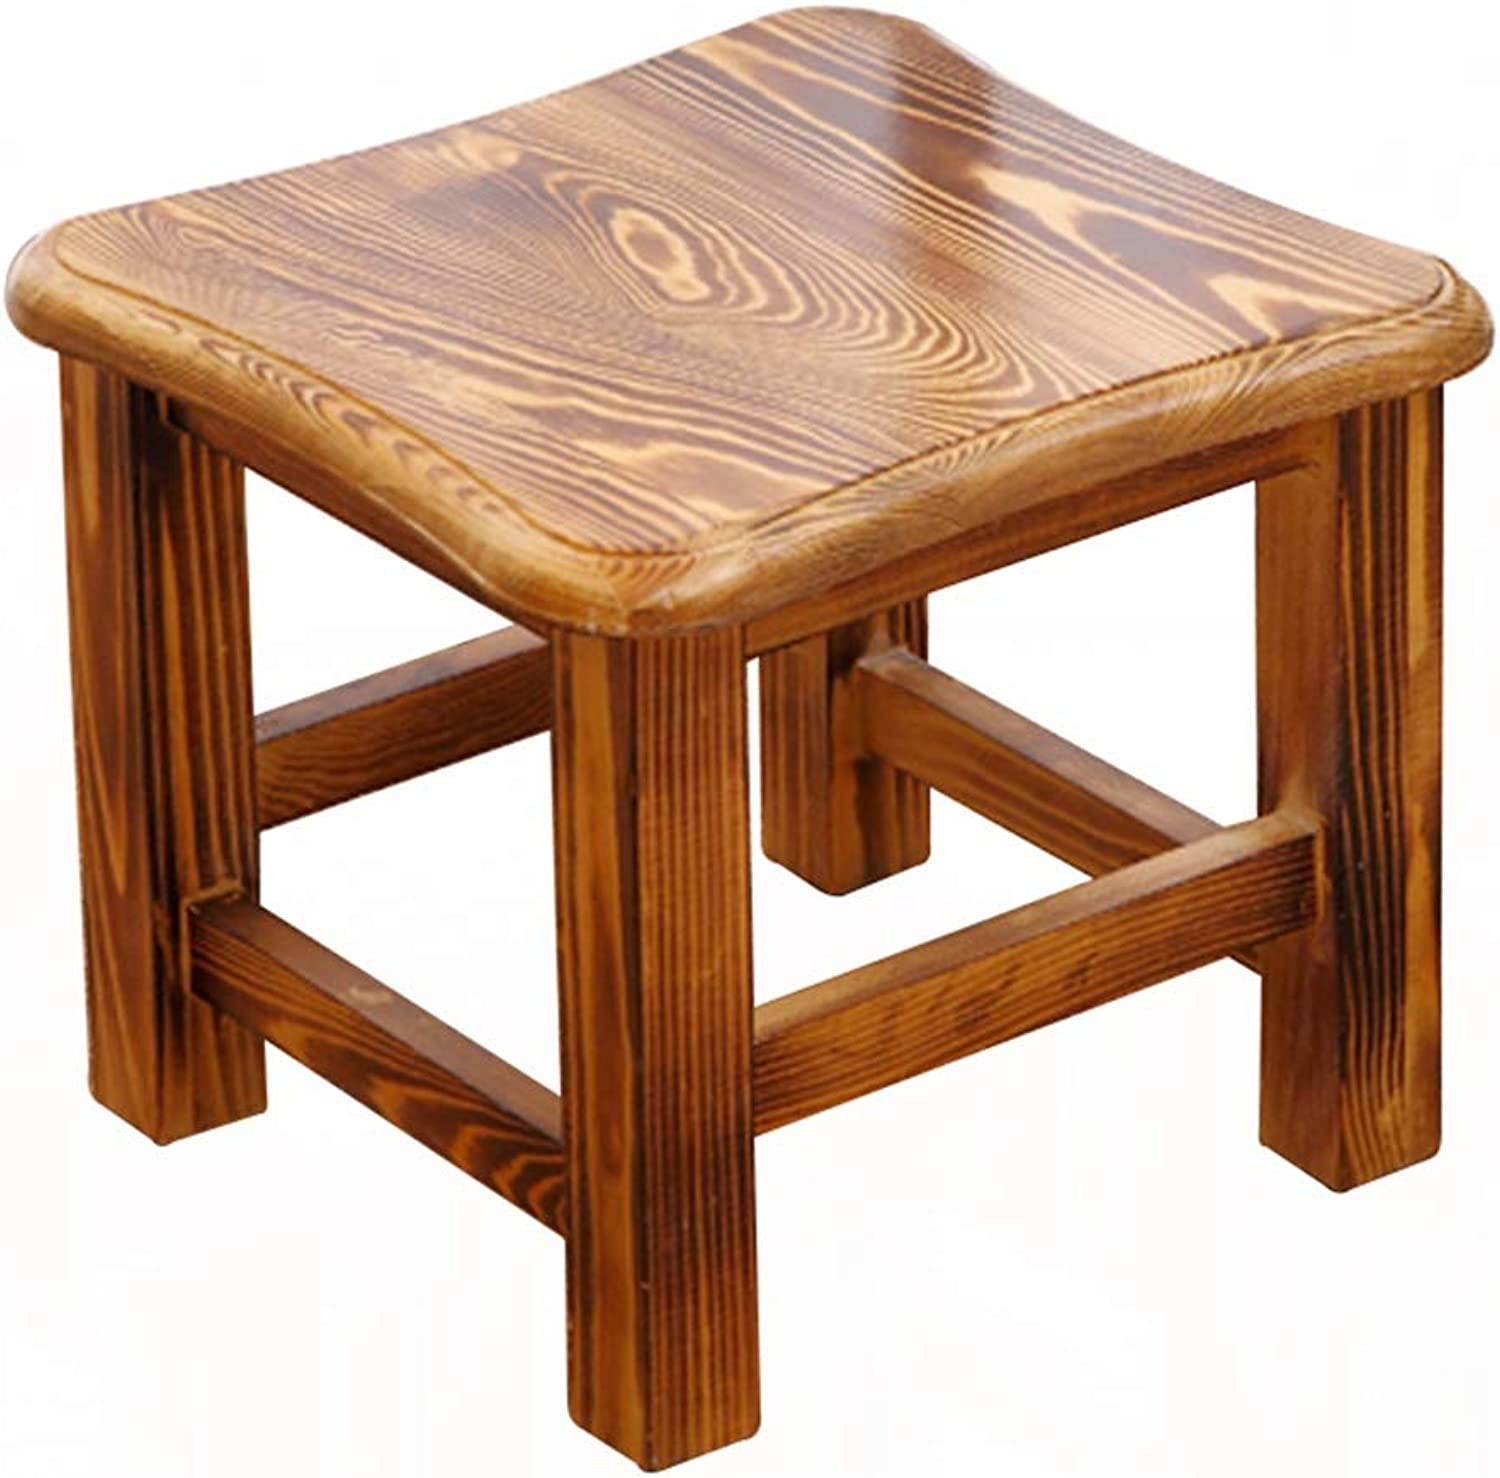 Stool - shoes Bench, Household Solid Wood Coffee Table Stool, Adult Small Square Stool Low Stool 29.5  29.5  25.5cm (color   A)